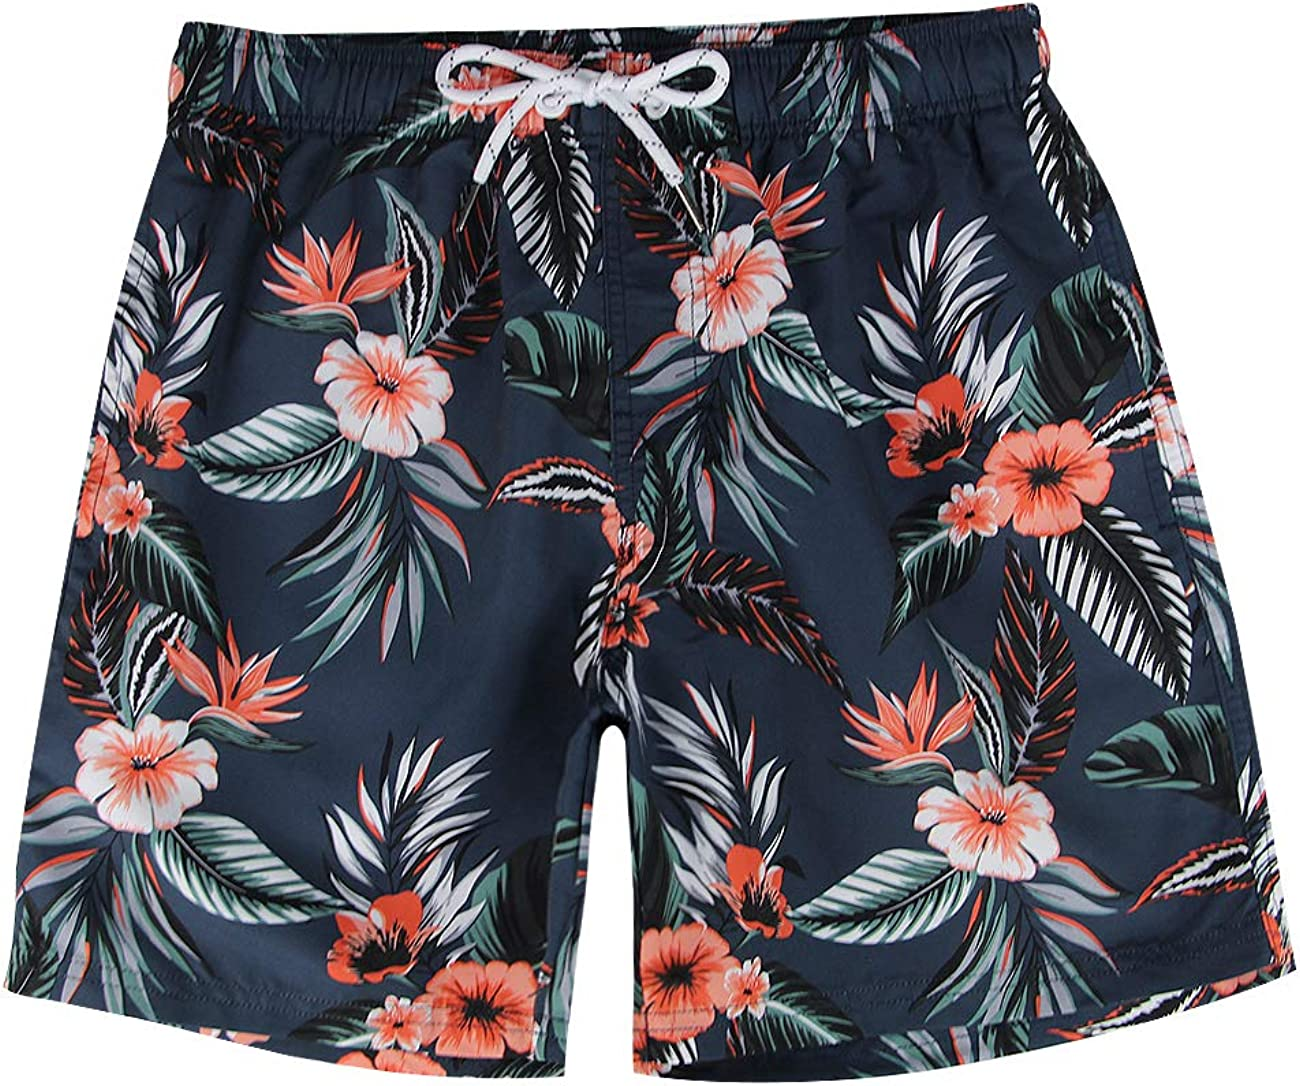 Coral, Medium MILANKERR Mens Swim Trunks Quick Dry Beach Shorts with Pockets 34-36